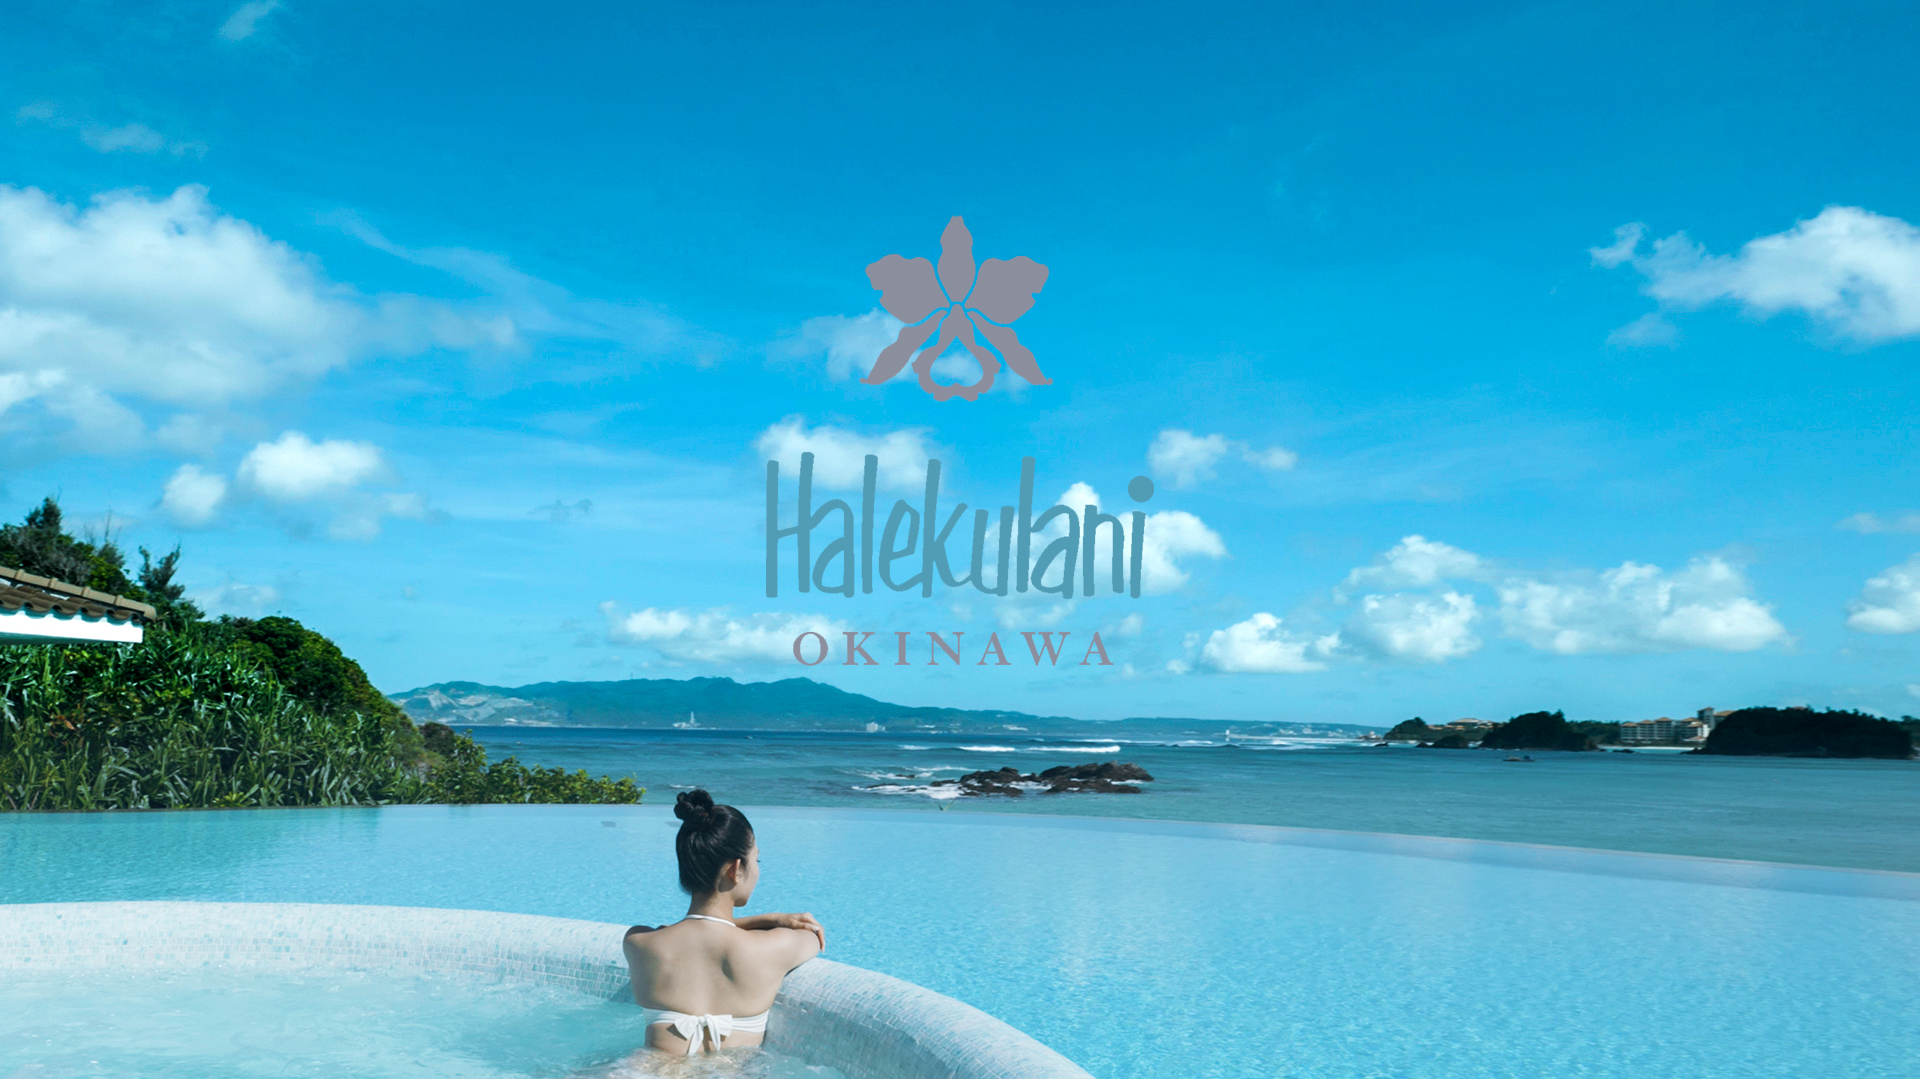 Introducing Halekulani Okinawa: a Luxury Resort inspired by Natural Beauty